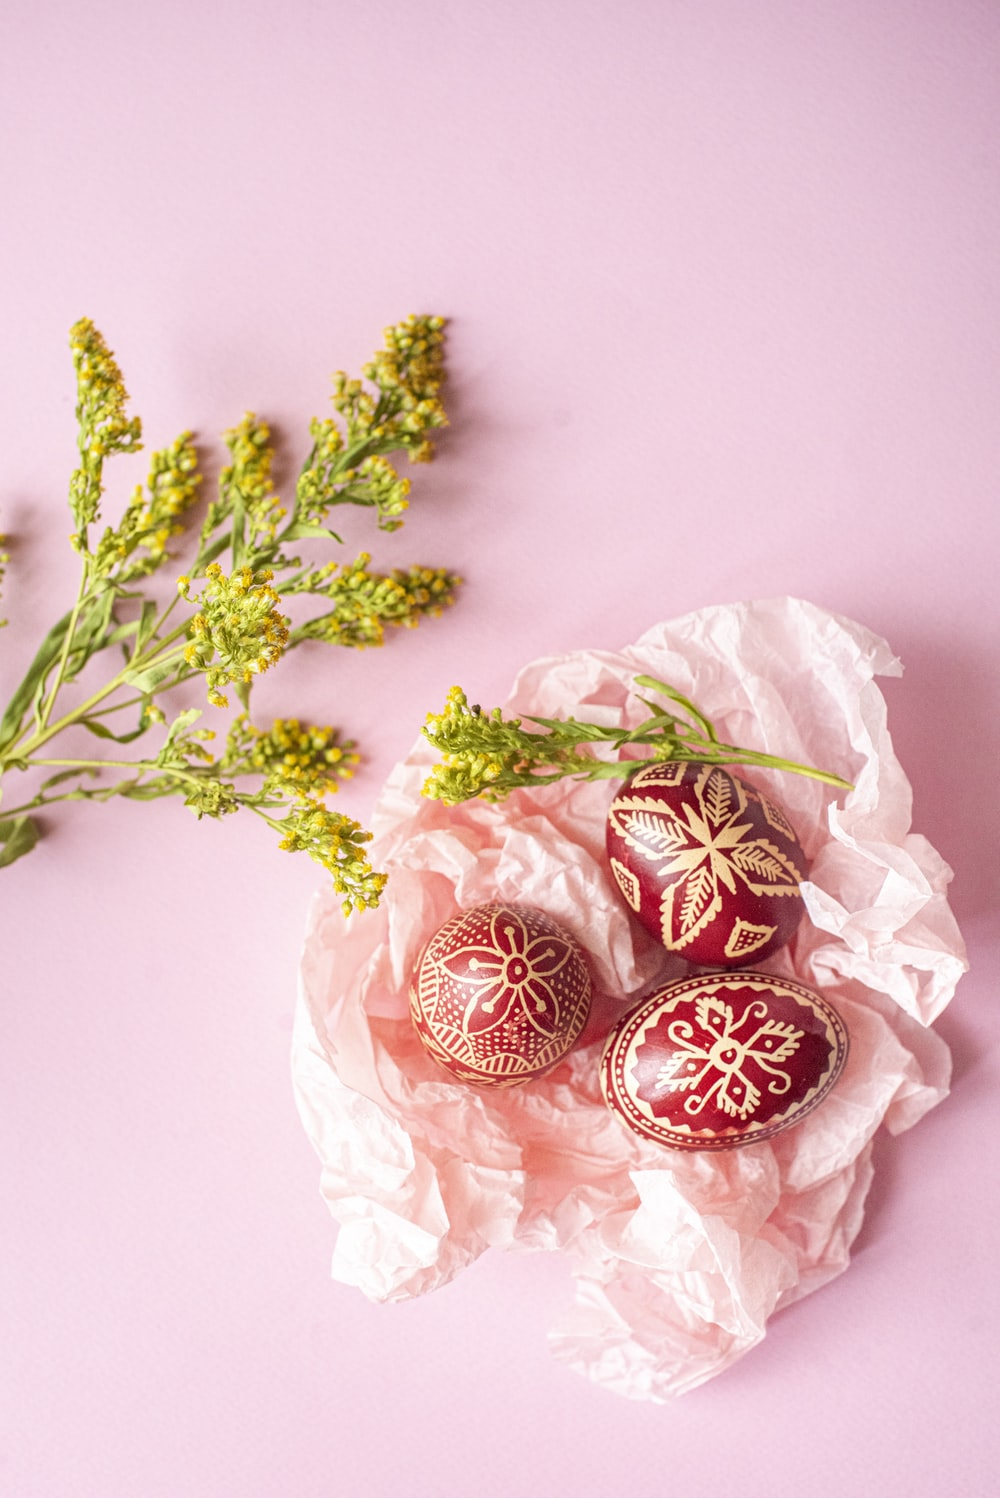 red and white floral ornaments